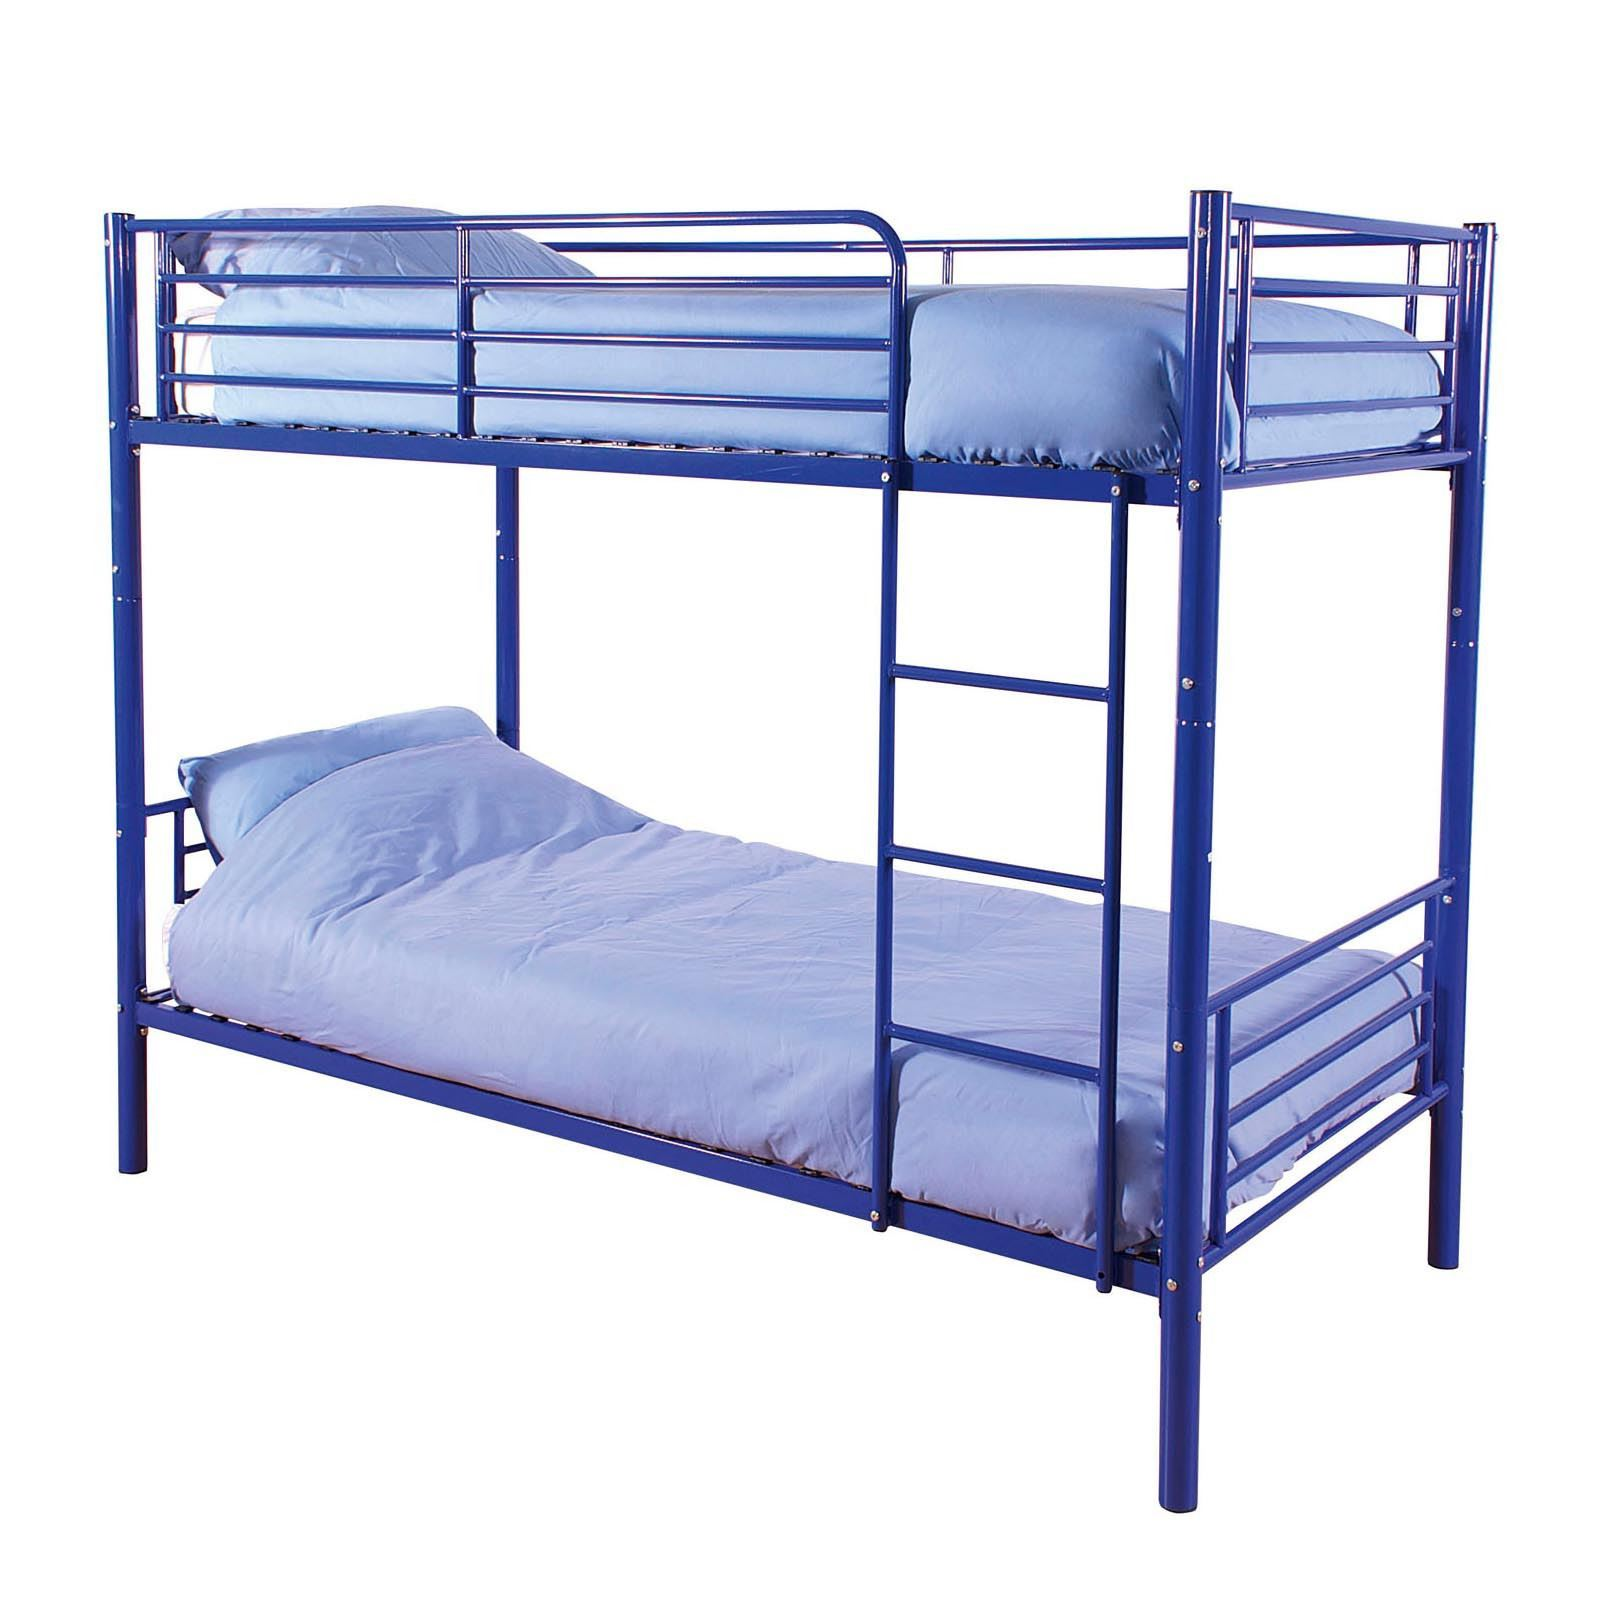 Happy Beds Cherry Quality Metal Bunk Bed 3ft Single 2x Mattress Home Furniture Ebay: home furniture single bed